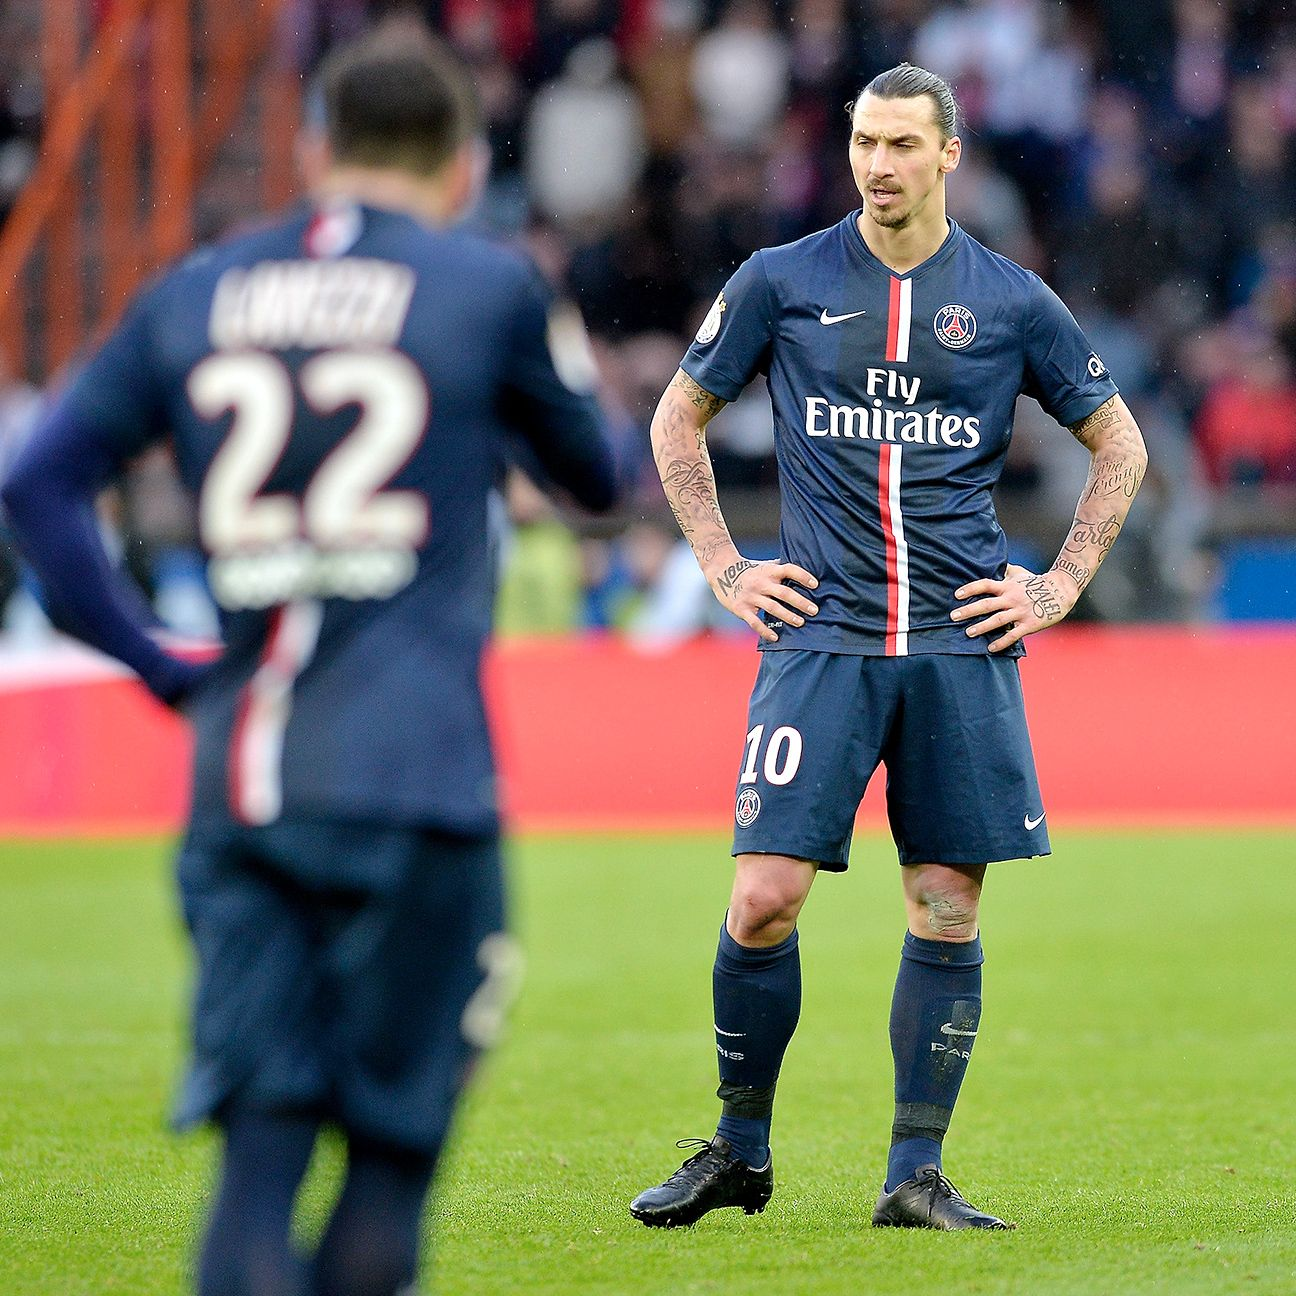 Zlatan Ibrahimovic and PSG were left to rue a late collapse that saw them cough up two points in the Ligue 1 title race.